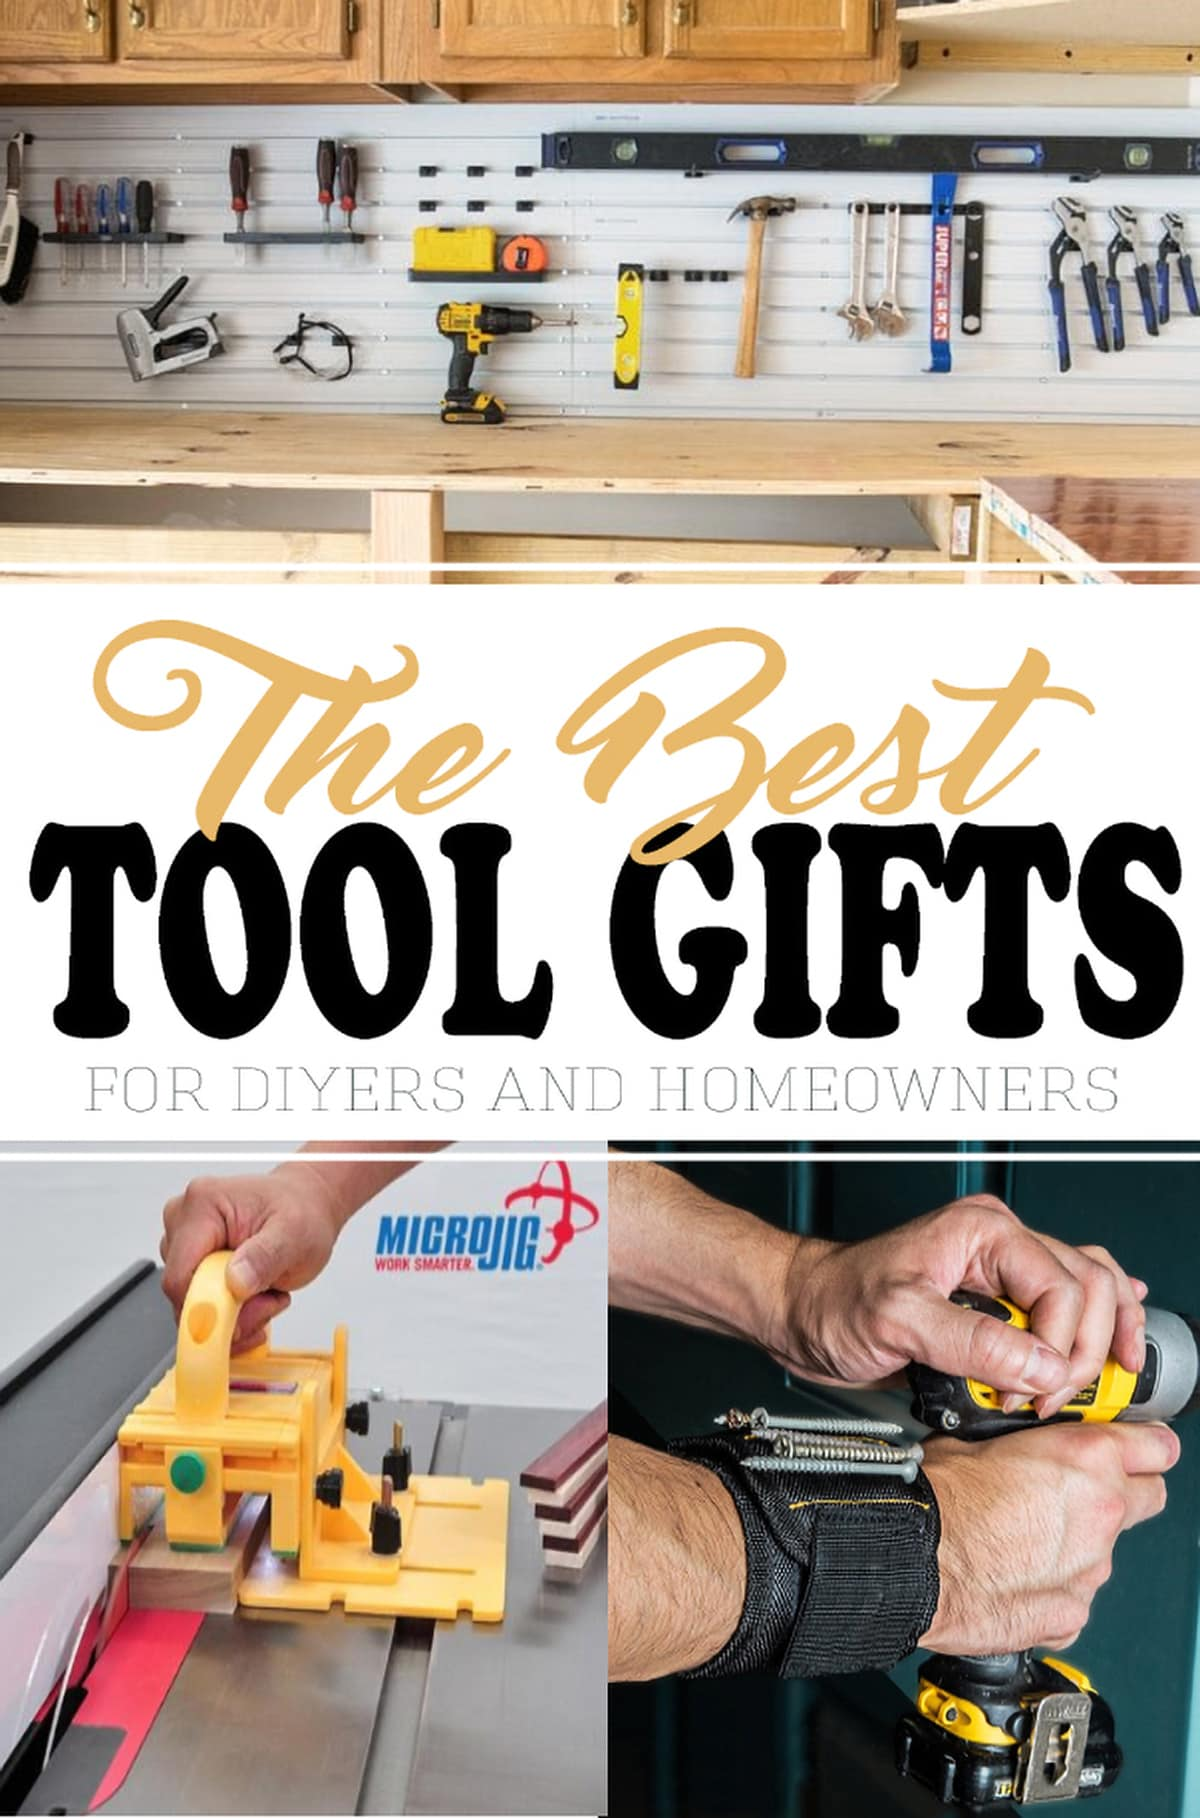 Gift Ideas for homeowners, handyman, and DIYers. Our community of DIYers put together this list of the most useful and affordable tools that any home owner would love to have!